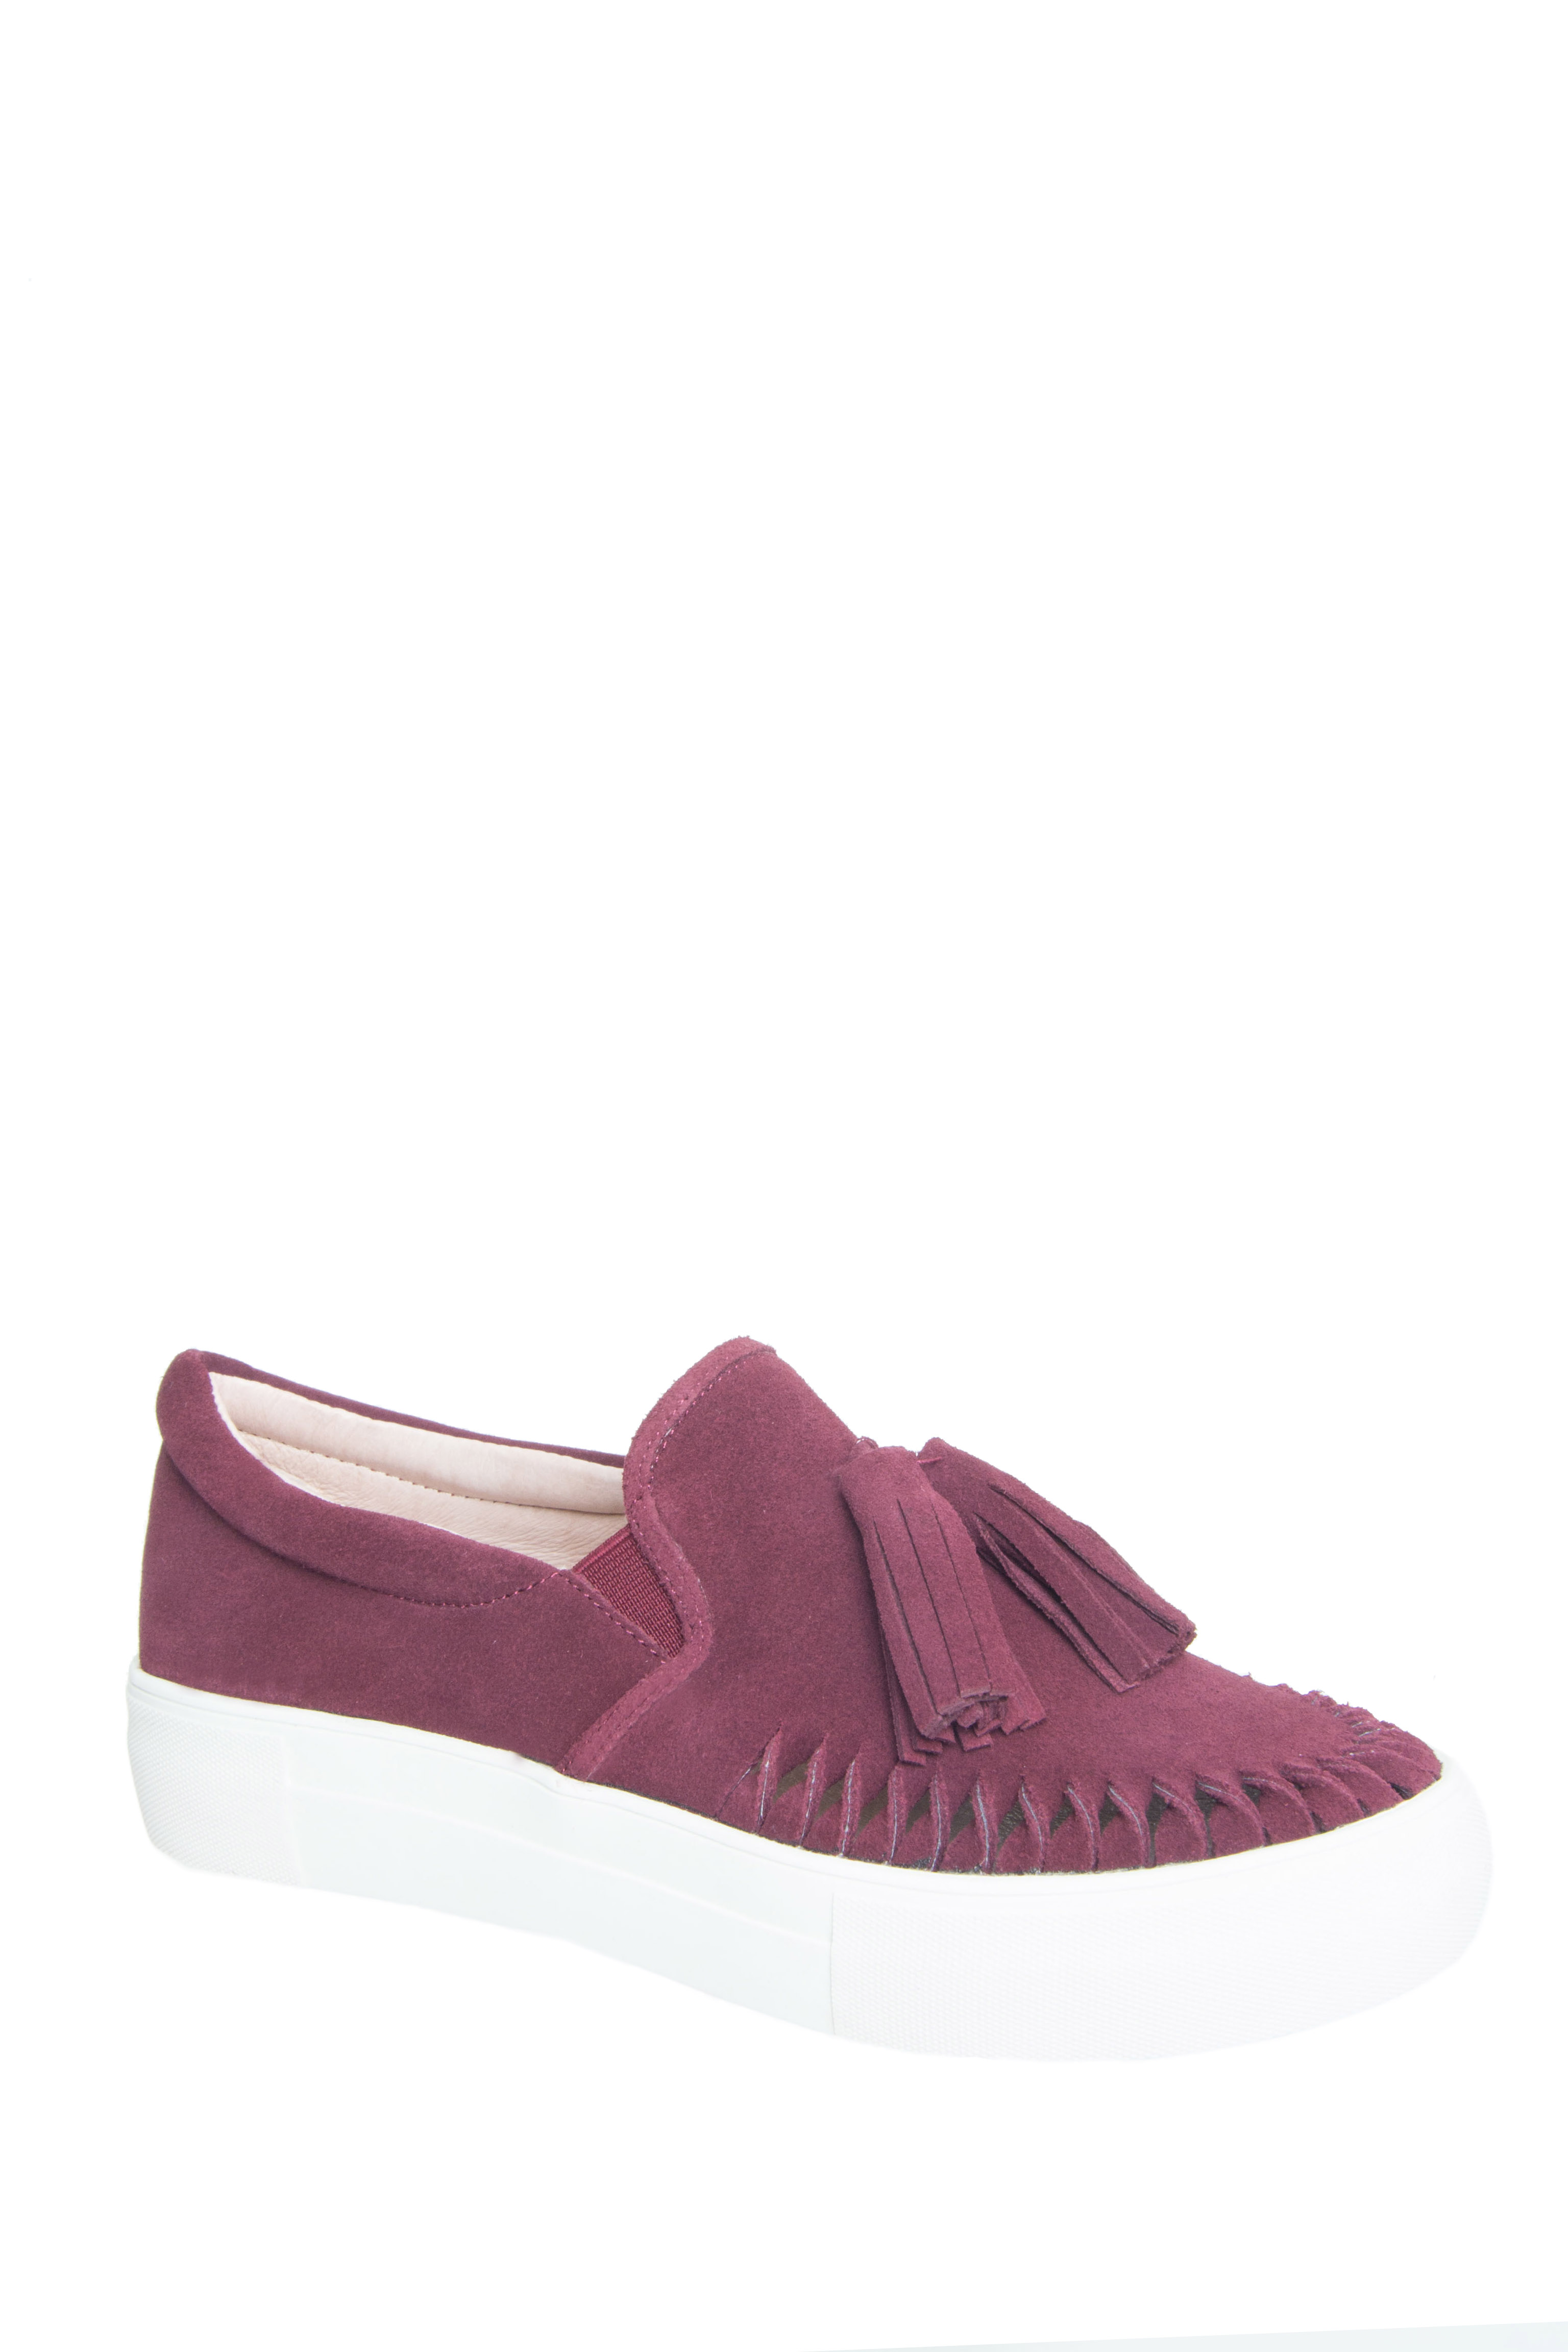 J/Slides Aztec Low Top Slip-On Platform Sneakers - Burgundy Suede